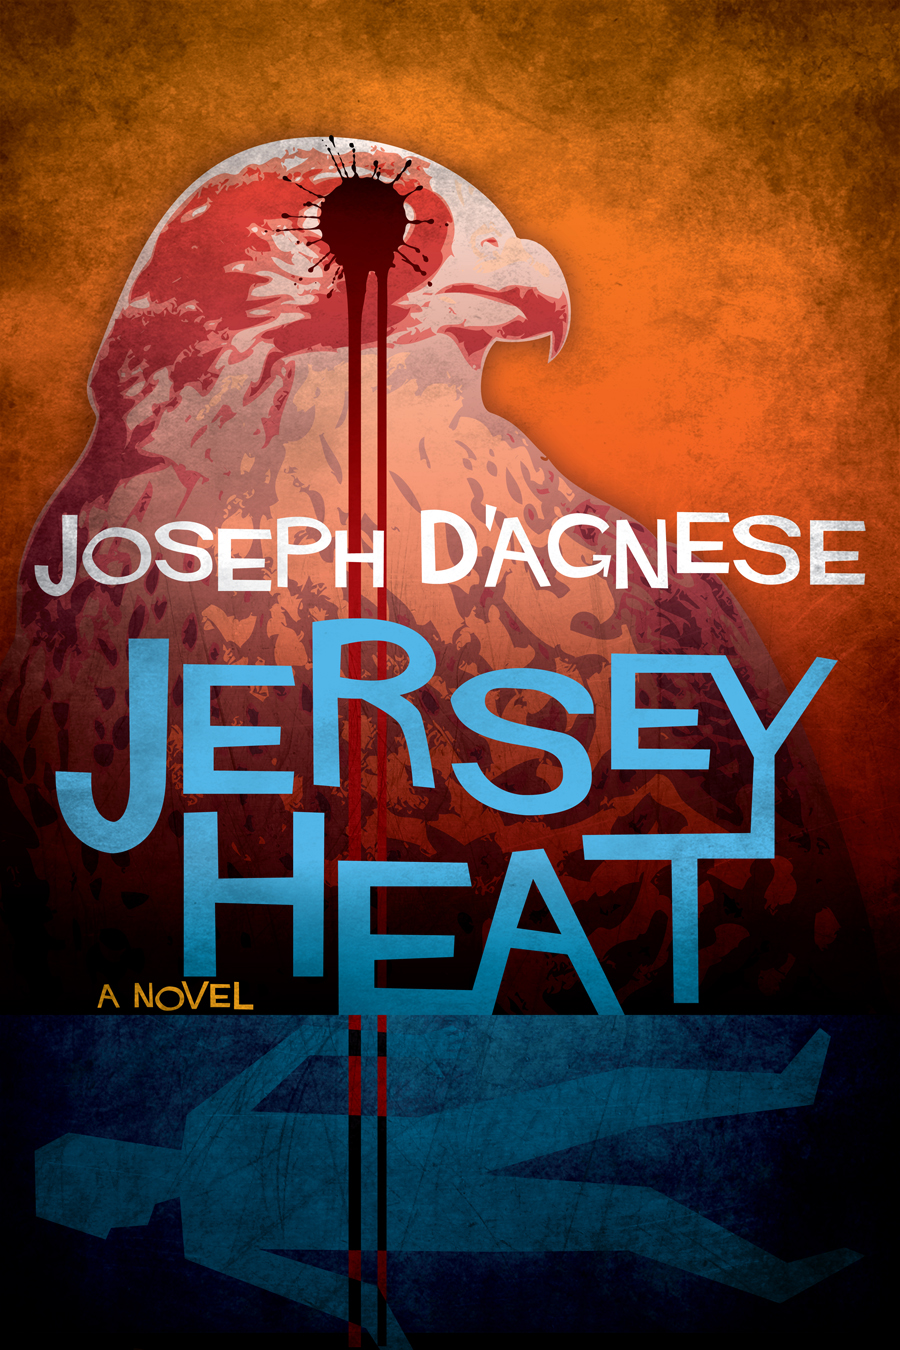 JERSEY HEAT:  An unlikely duo takes on corruption at a small-town water company in an eco-thriller that is part Elmore Leonard, part Carl Hiaasen, and a 100 percent New Jersey. Crime novel, 77,000 words.   Available:    Kindle  (US)   Kindle  (UK)   Nook    iPad    Smashwords    Kobo    Paperback